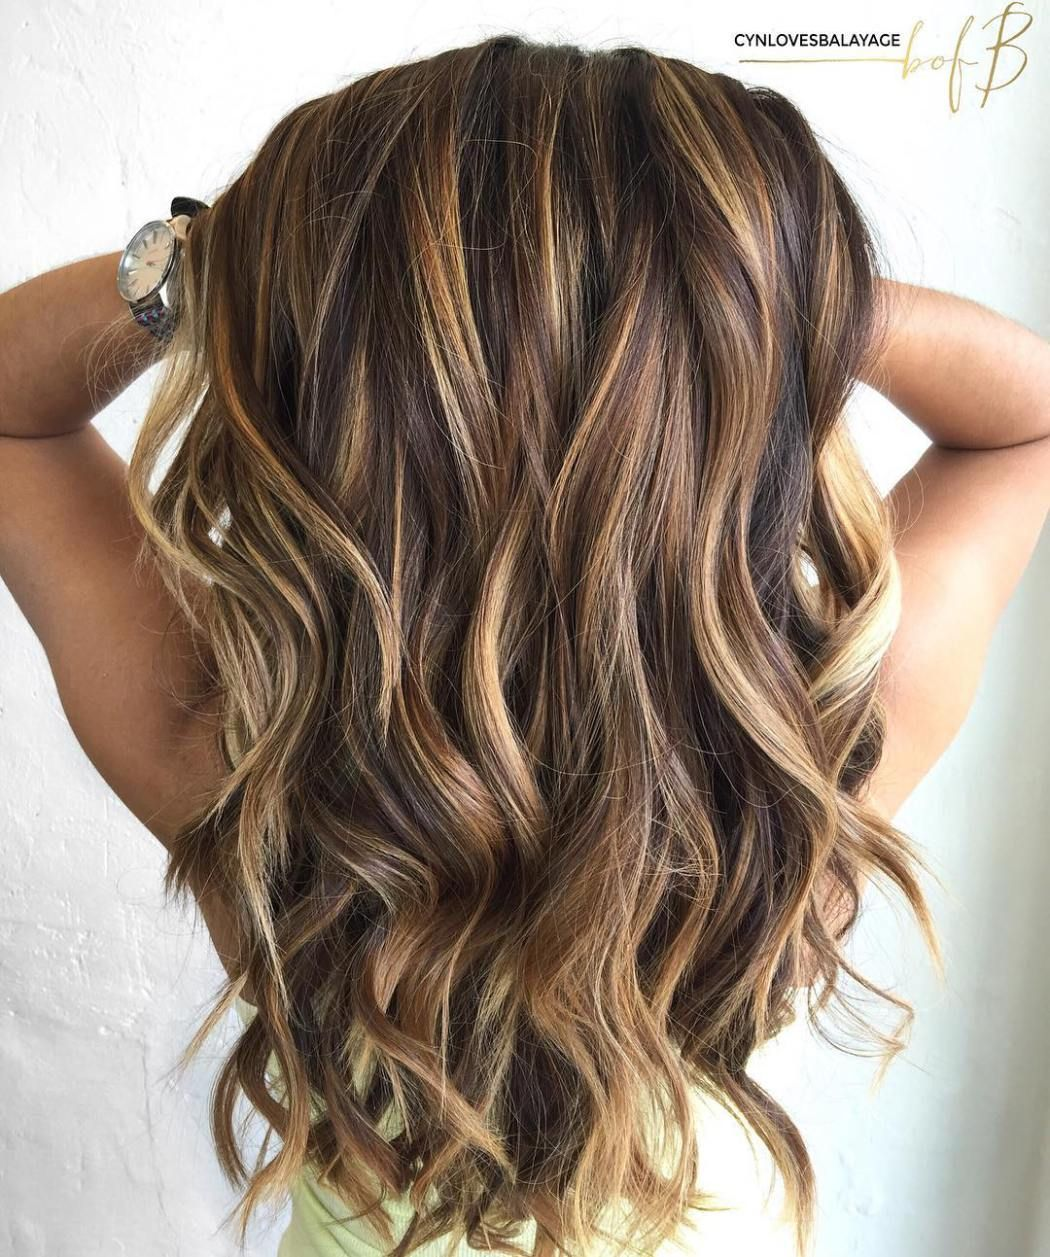 60 Looks With Caramel Highlights On Brown And Dark Brown Hair Hair Styles Long Brown Hair Hair